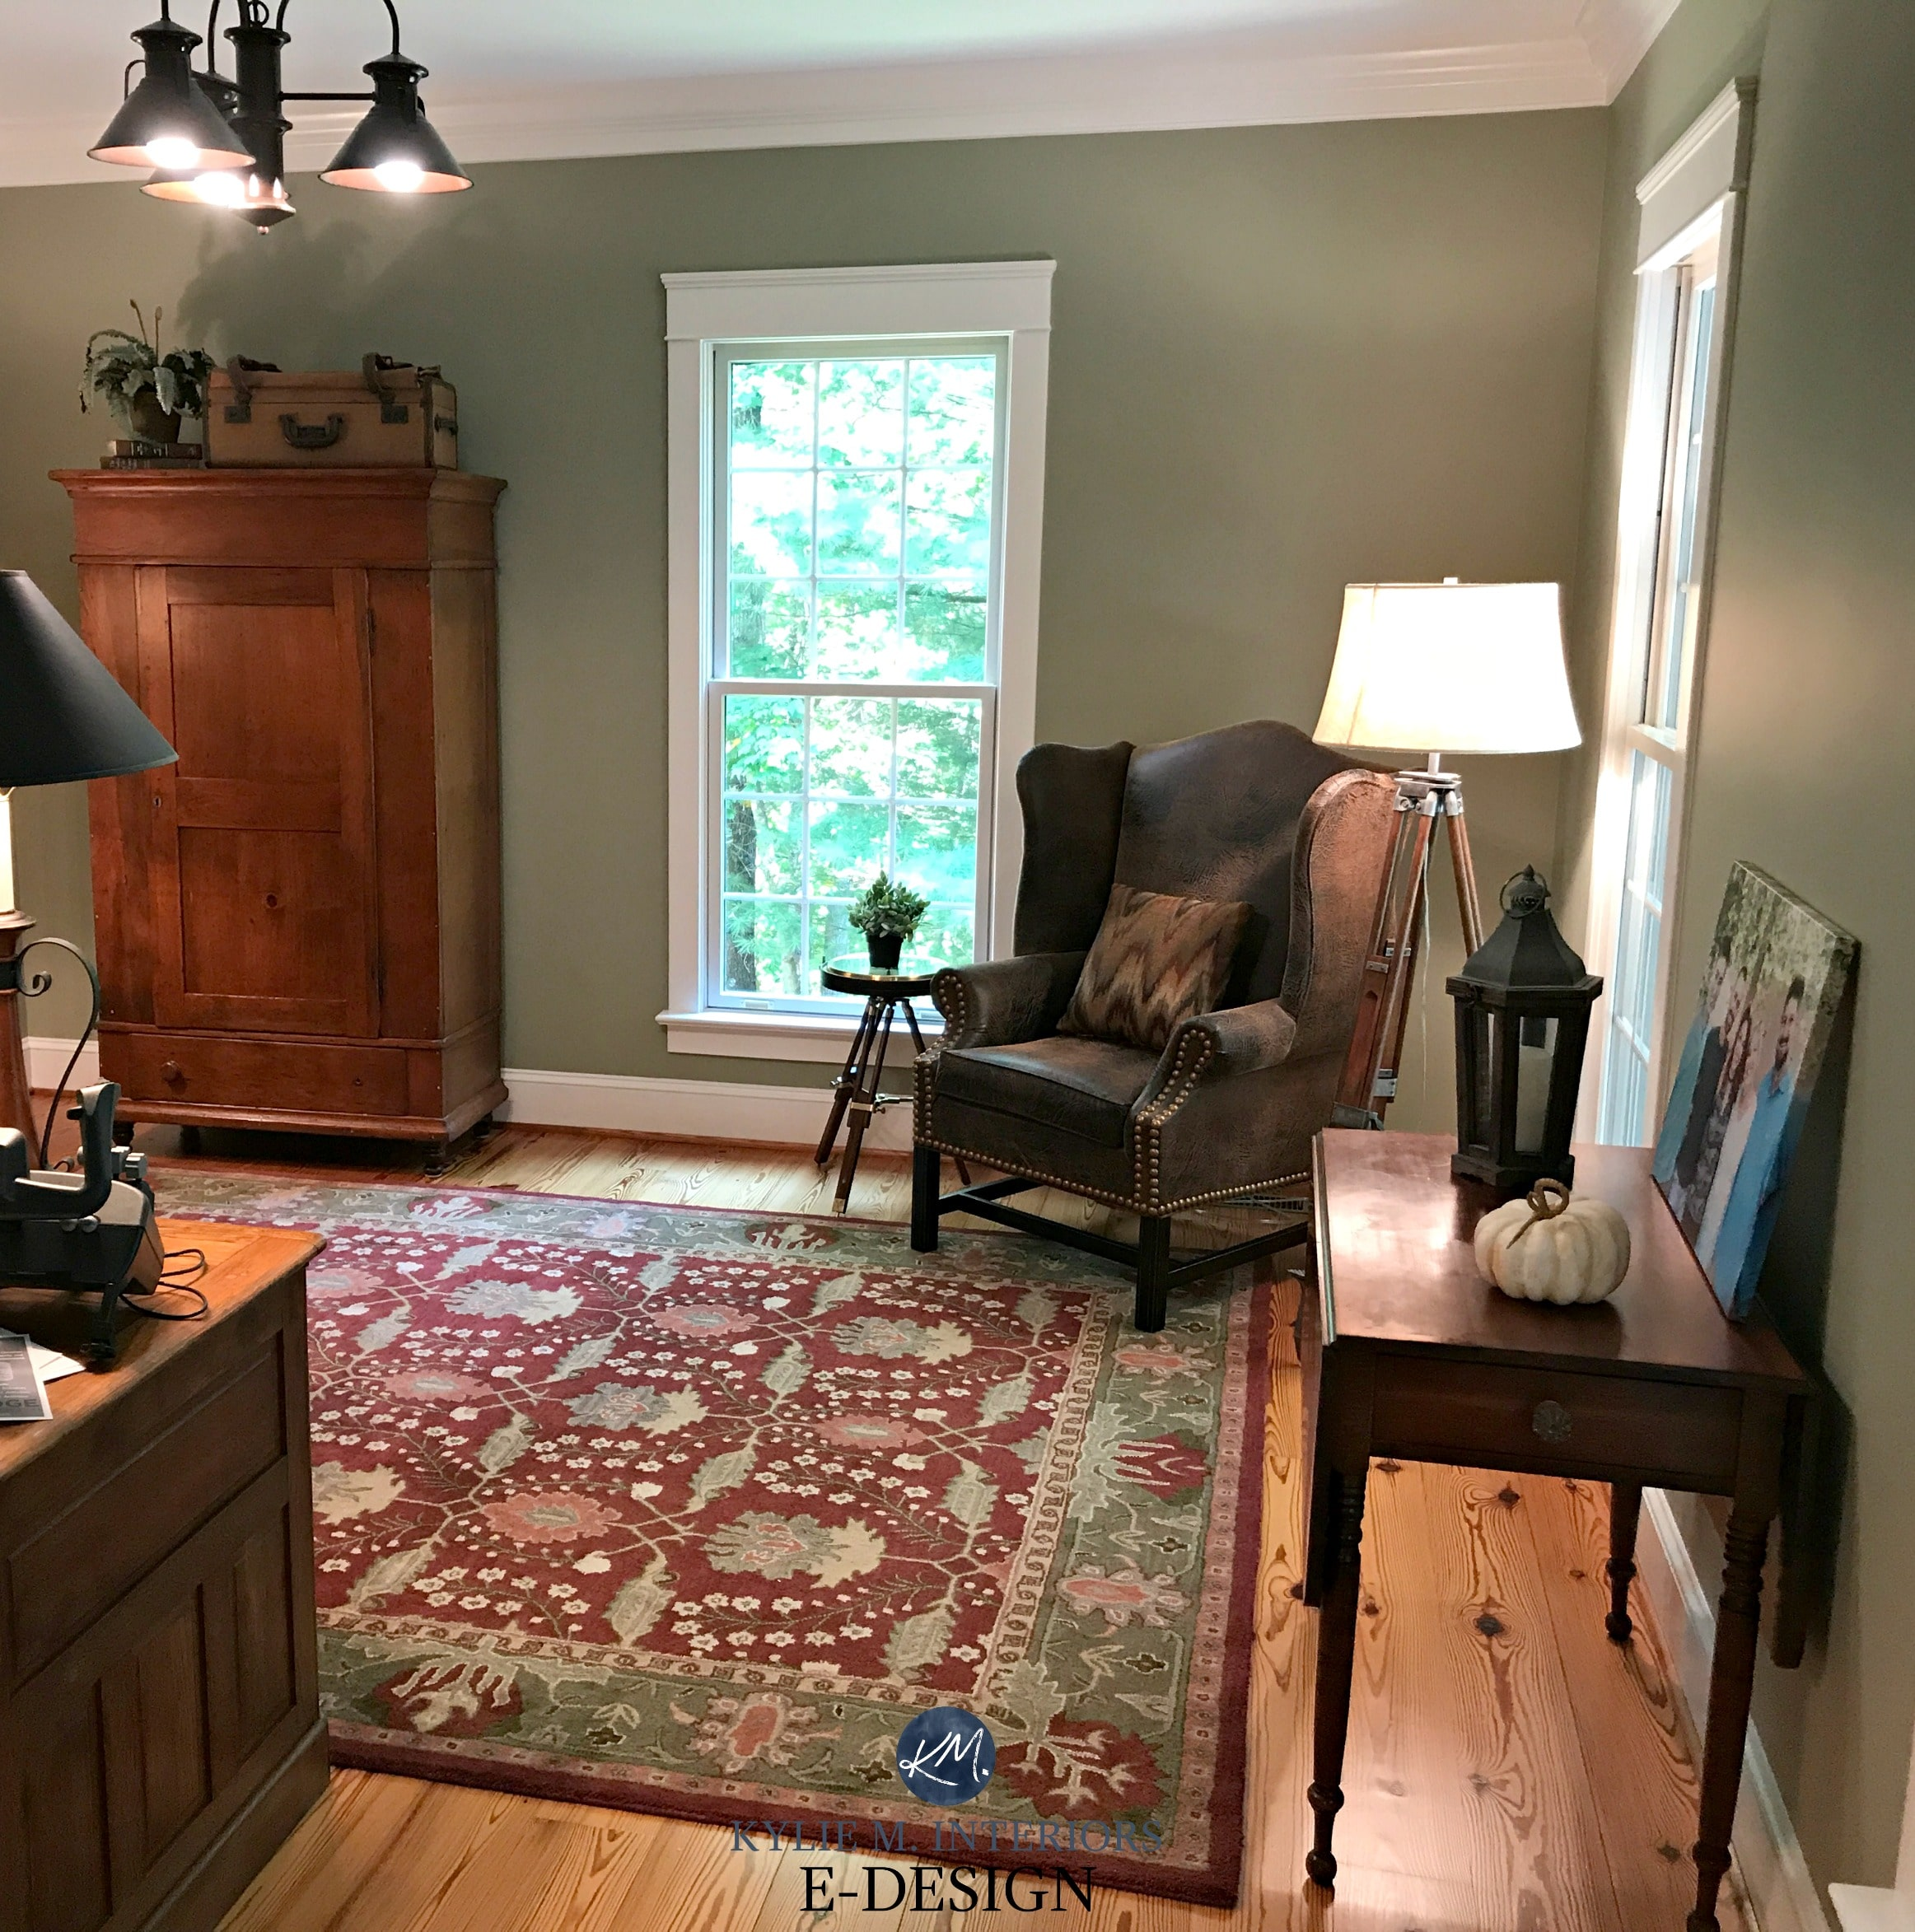 Benjamin Moore Nantucket Gray A Green Paint Colour Home Office With Red And Brown Accents Country Style Kylie M E Design Virtul Online